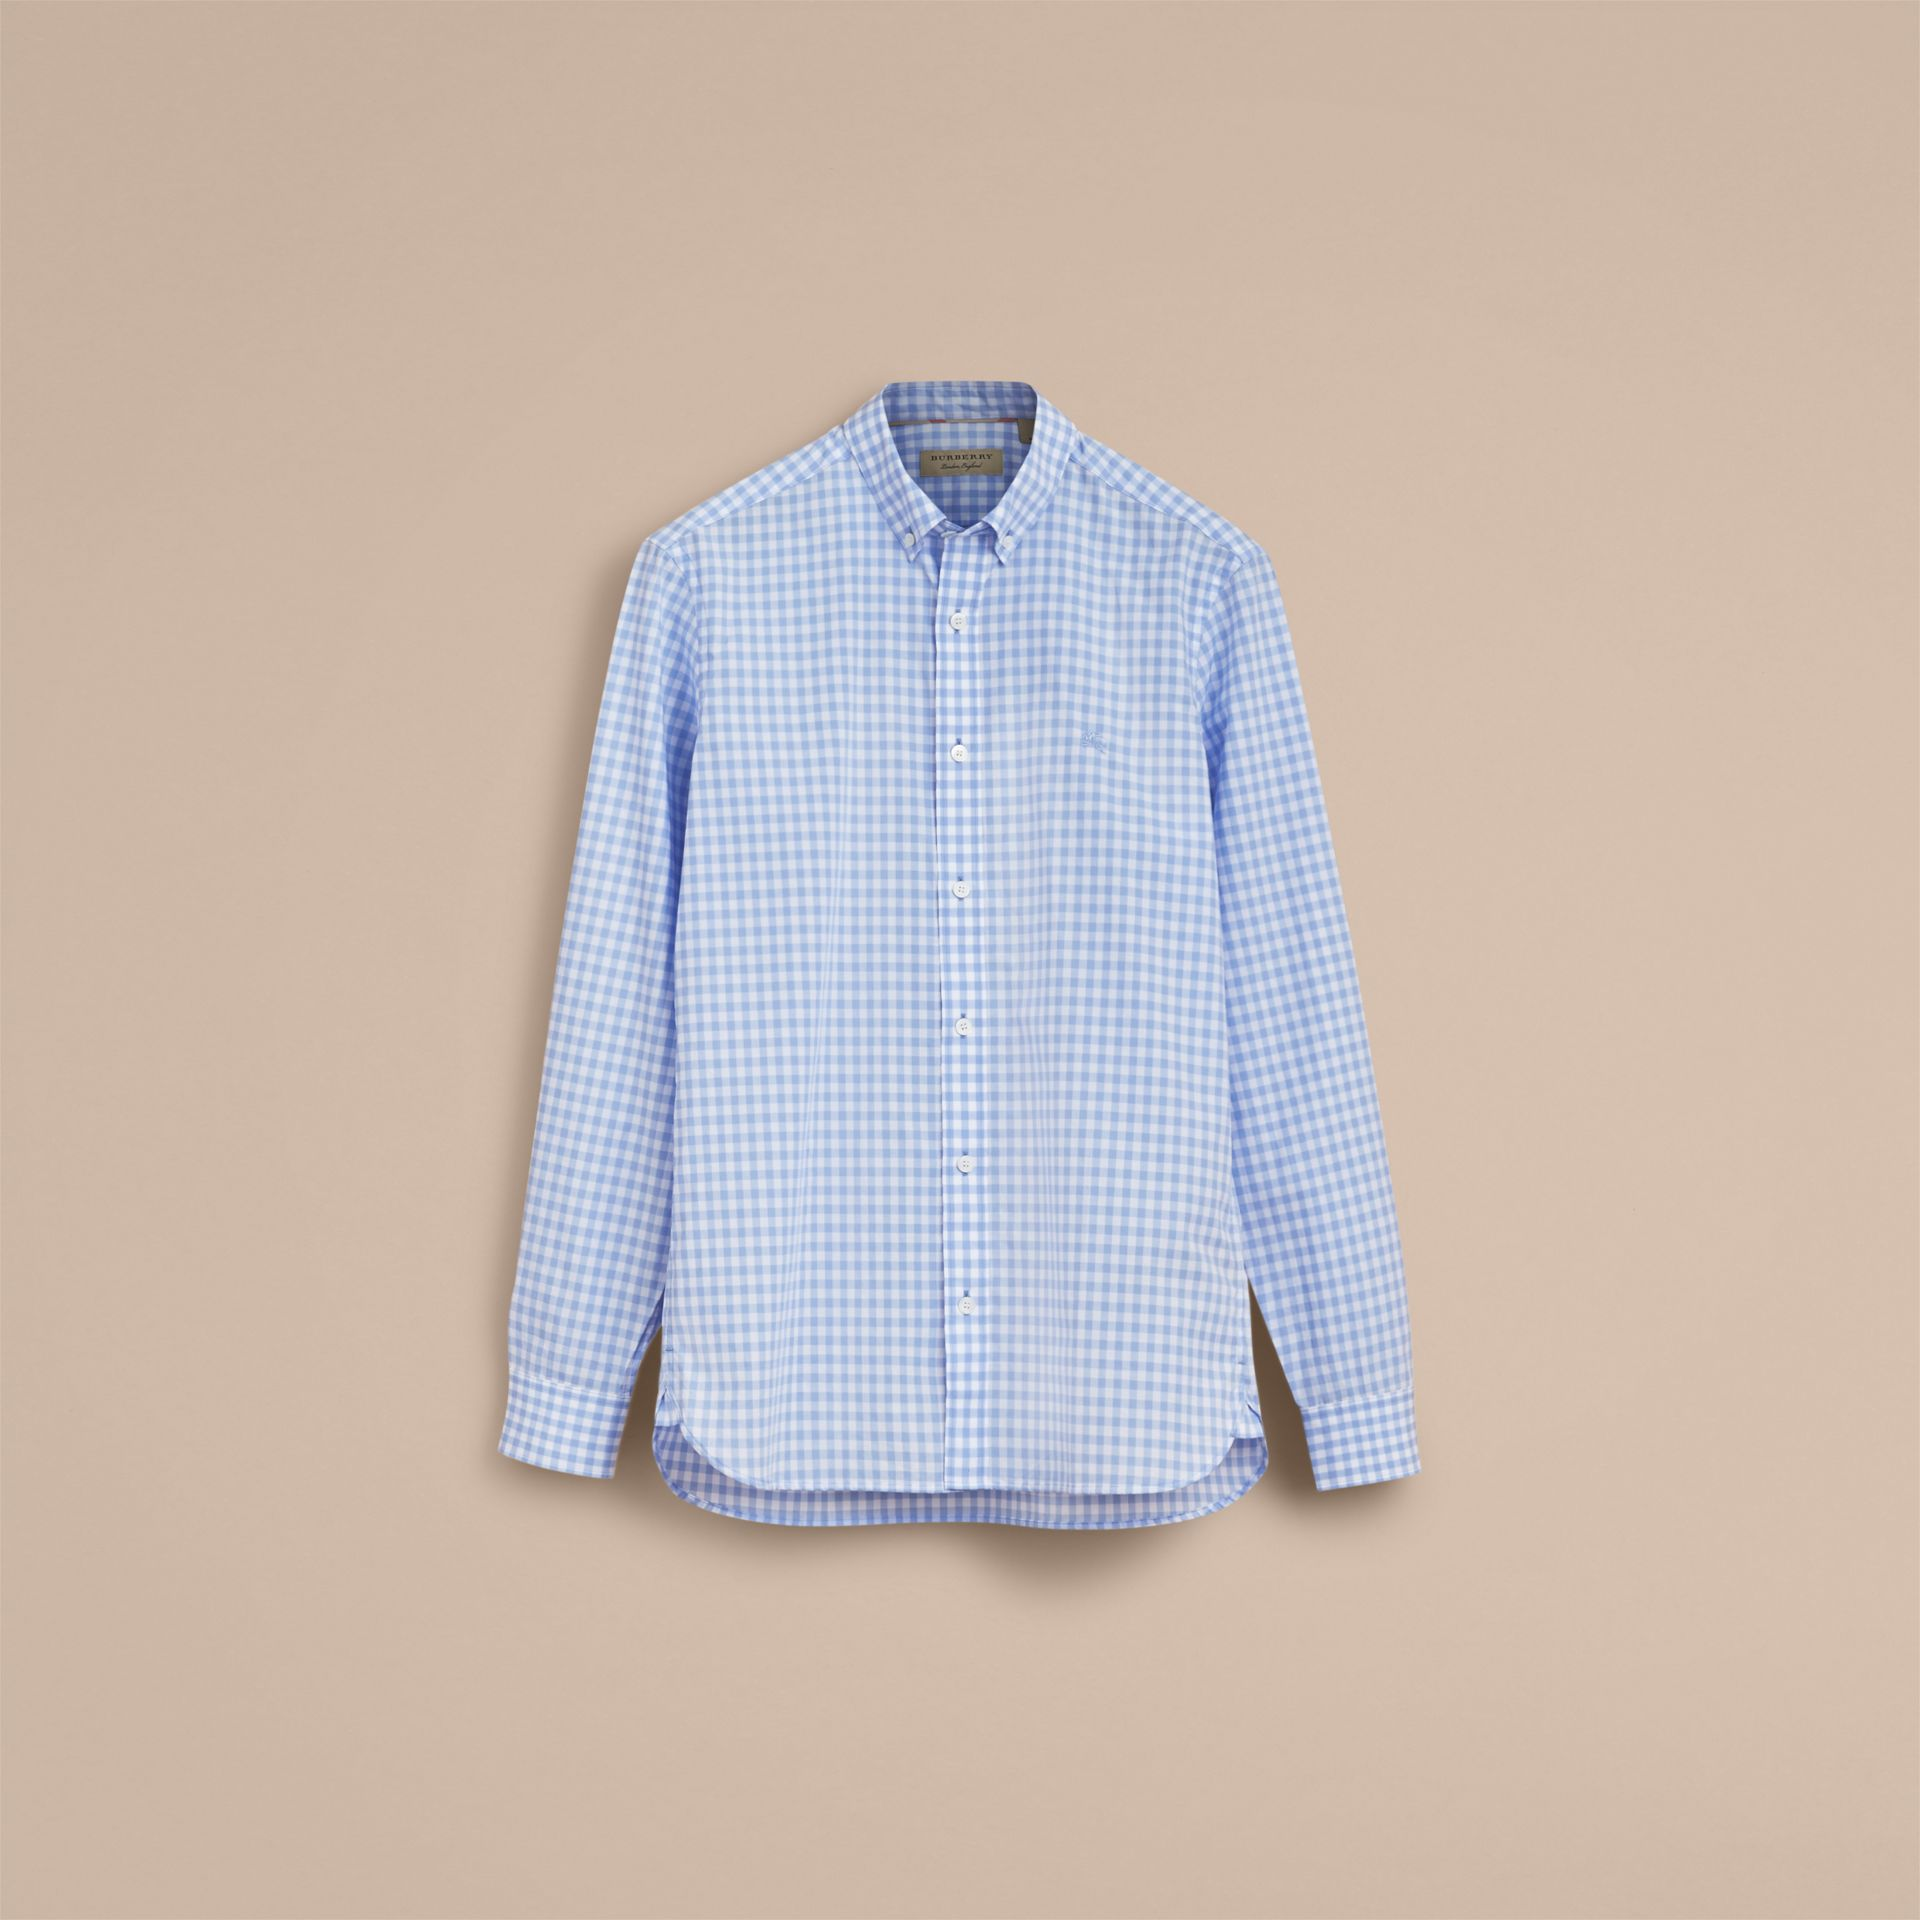 Button-down Collar Gingham Cotton Shirt in Pale Blue - Men | Burberry Canada - gallery image 4